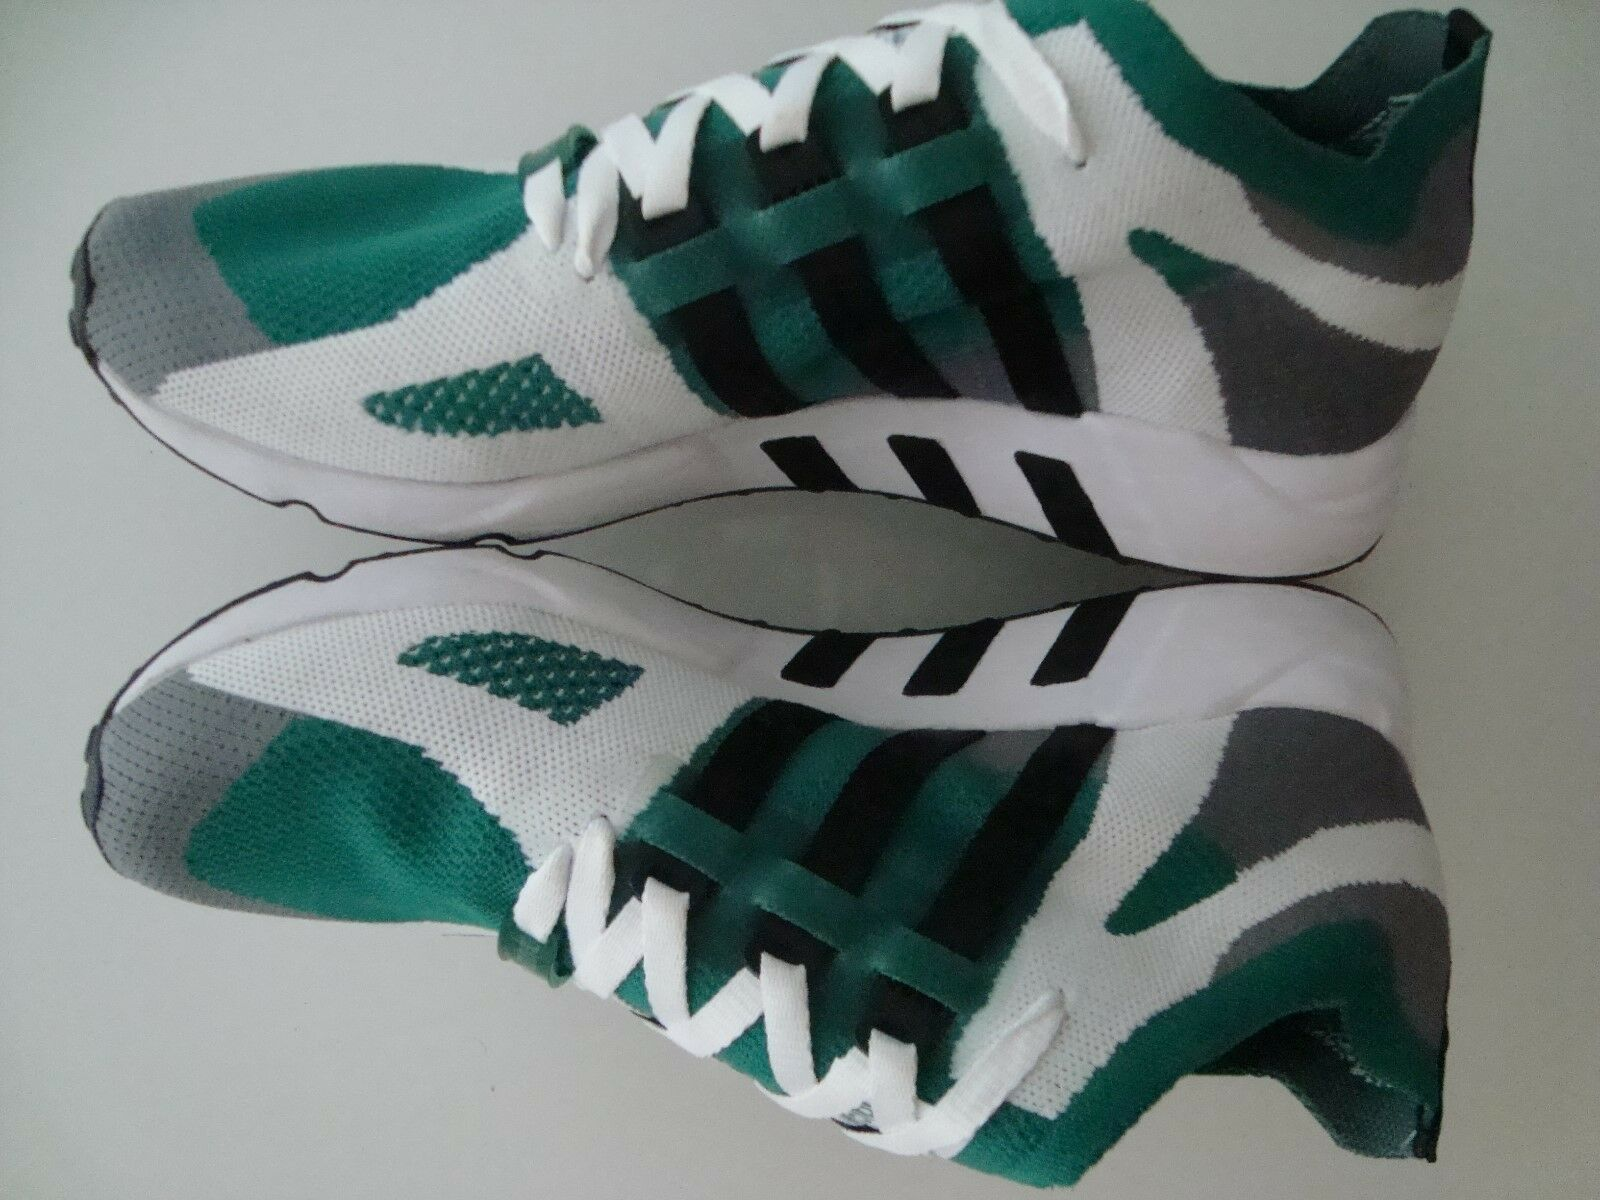 ADIDAS MENS EQT EQUIPMENT RUNNING GUIDANCE SHOES SIZE 10.5 (FREE SHIPPING)